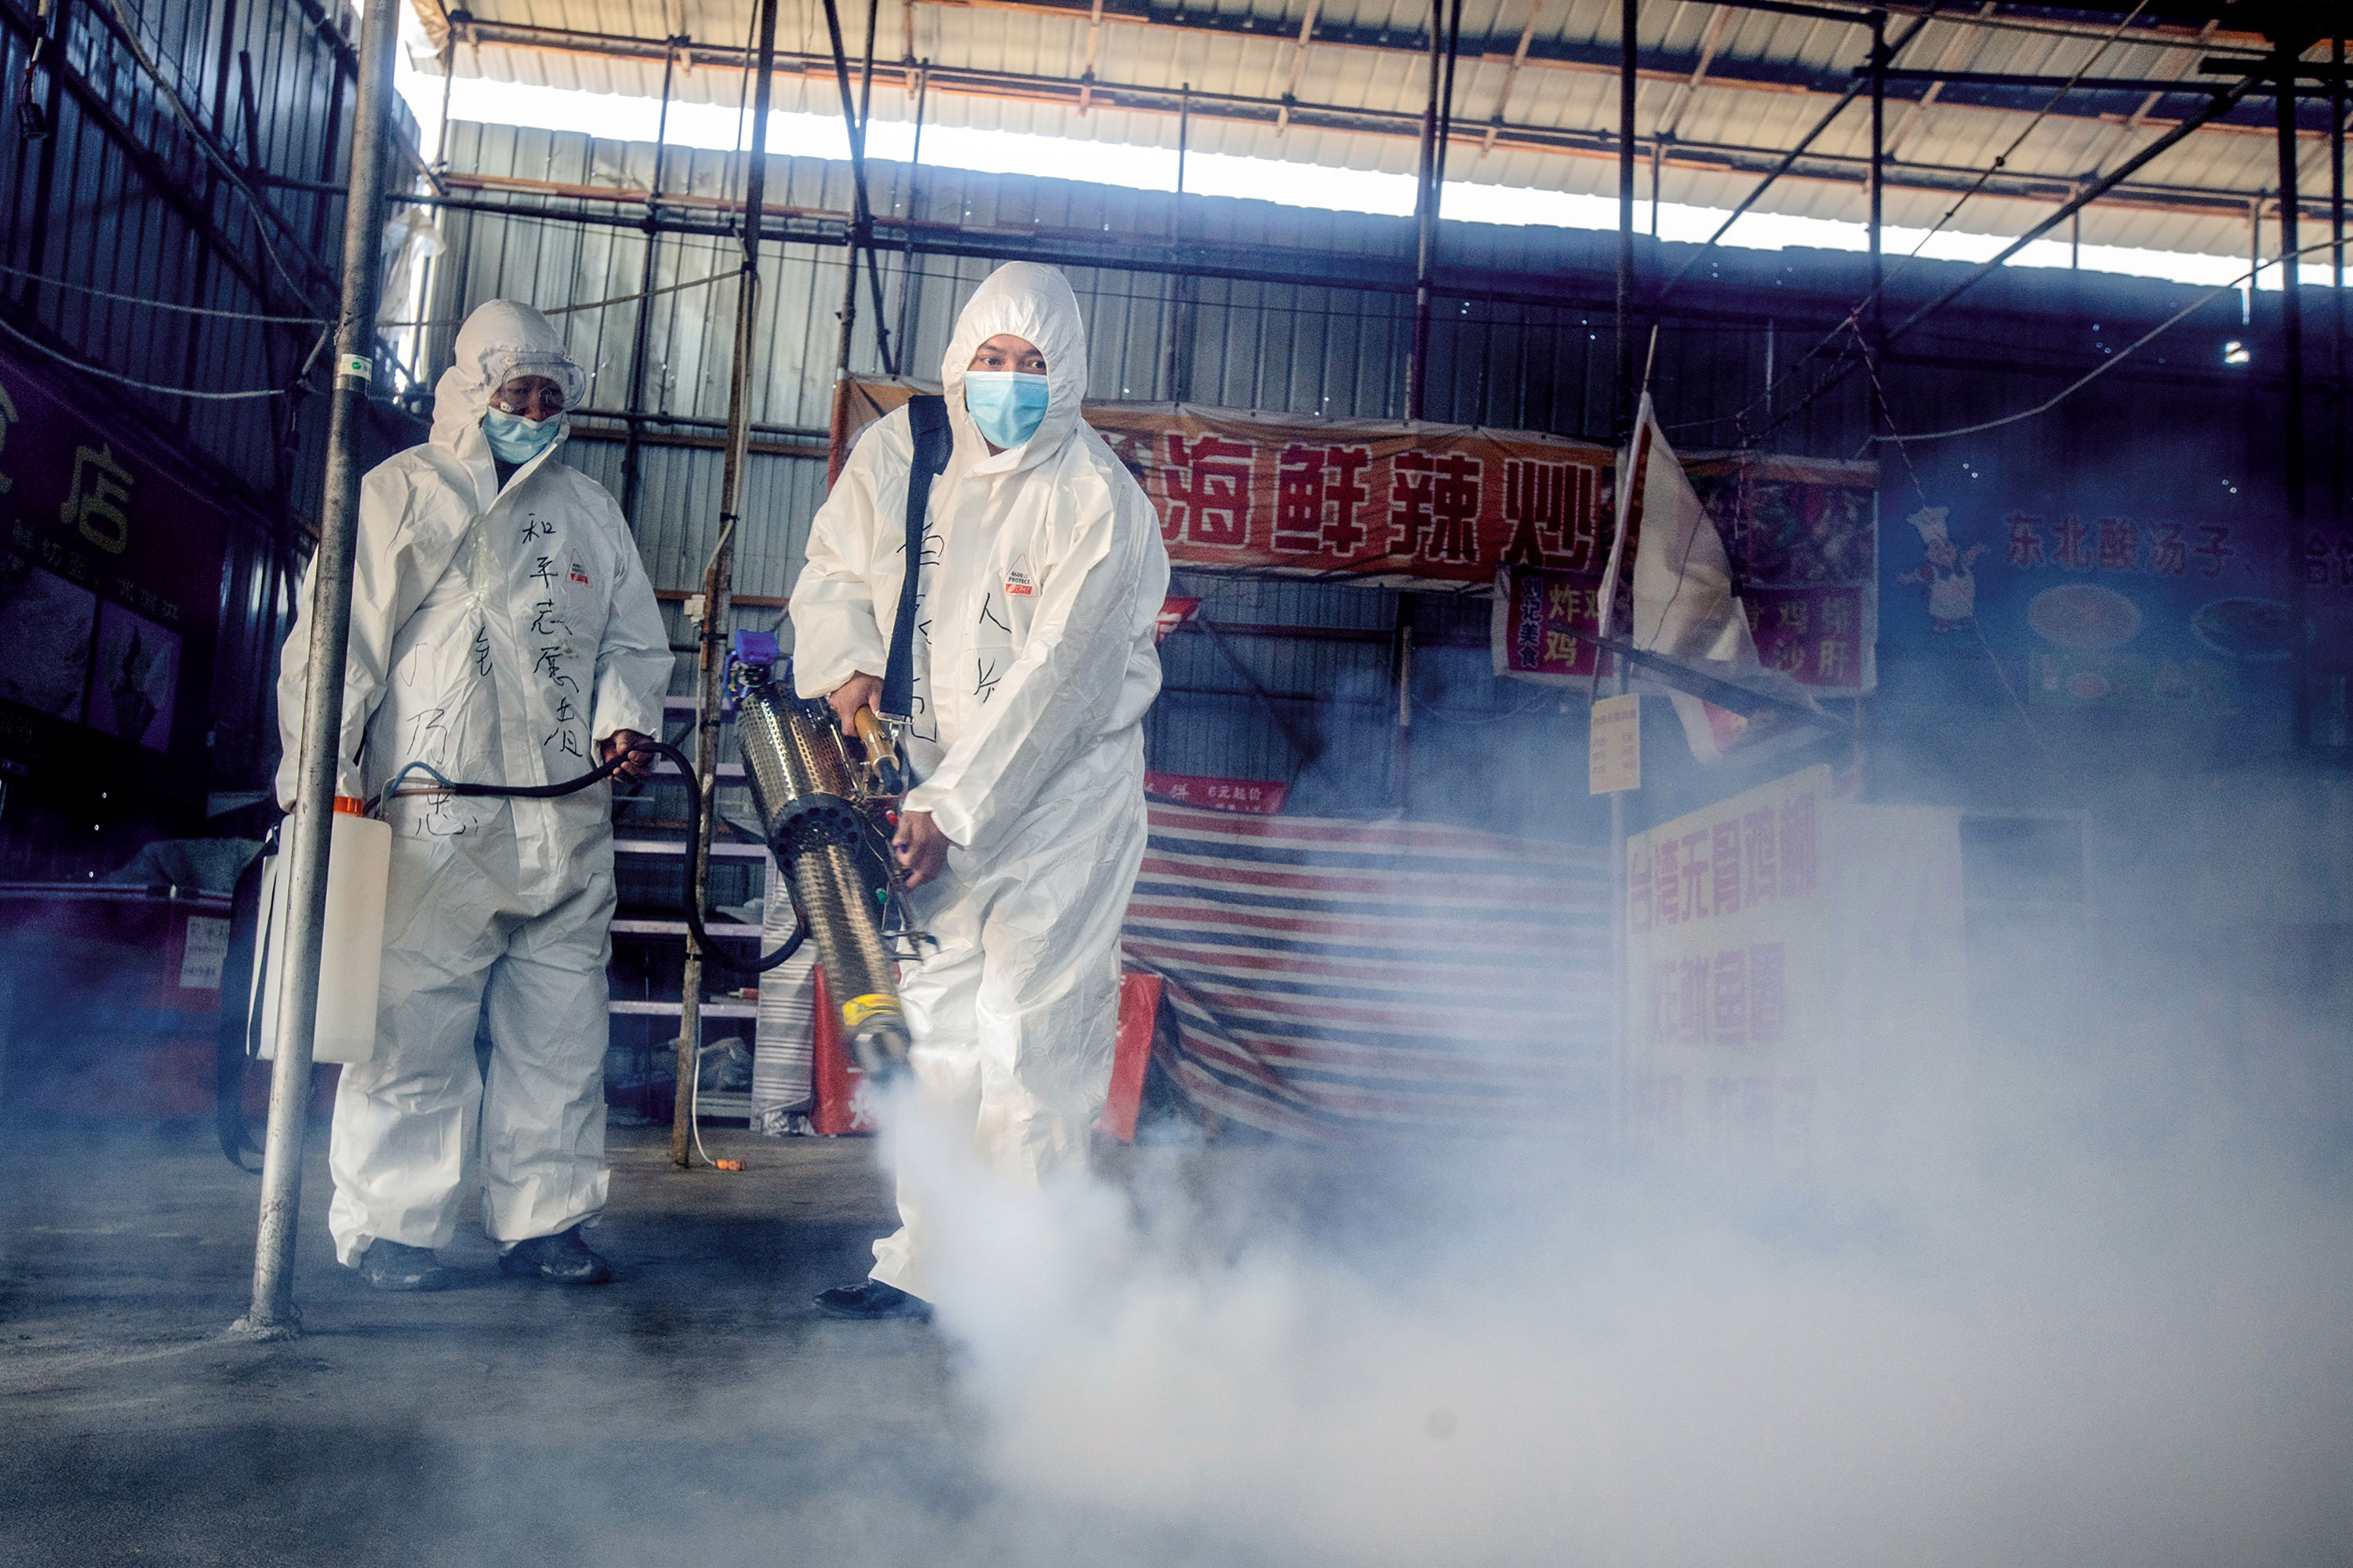 Volunteers spray disinfectant at a market on May 6 as the city of Suifenhe, China prepares to reopen.